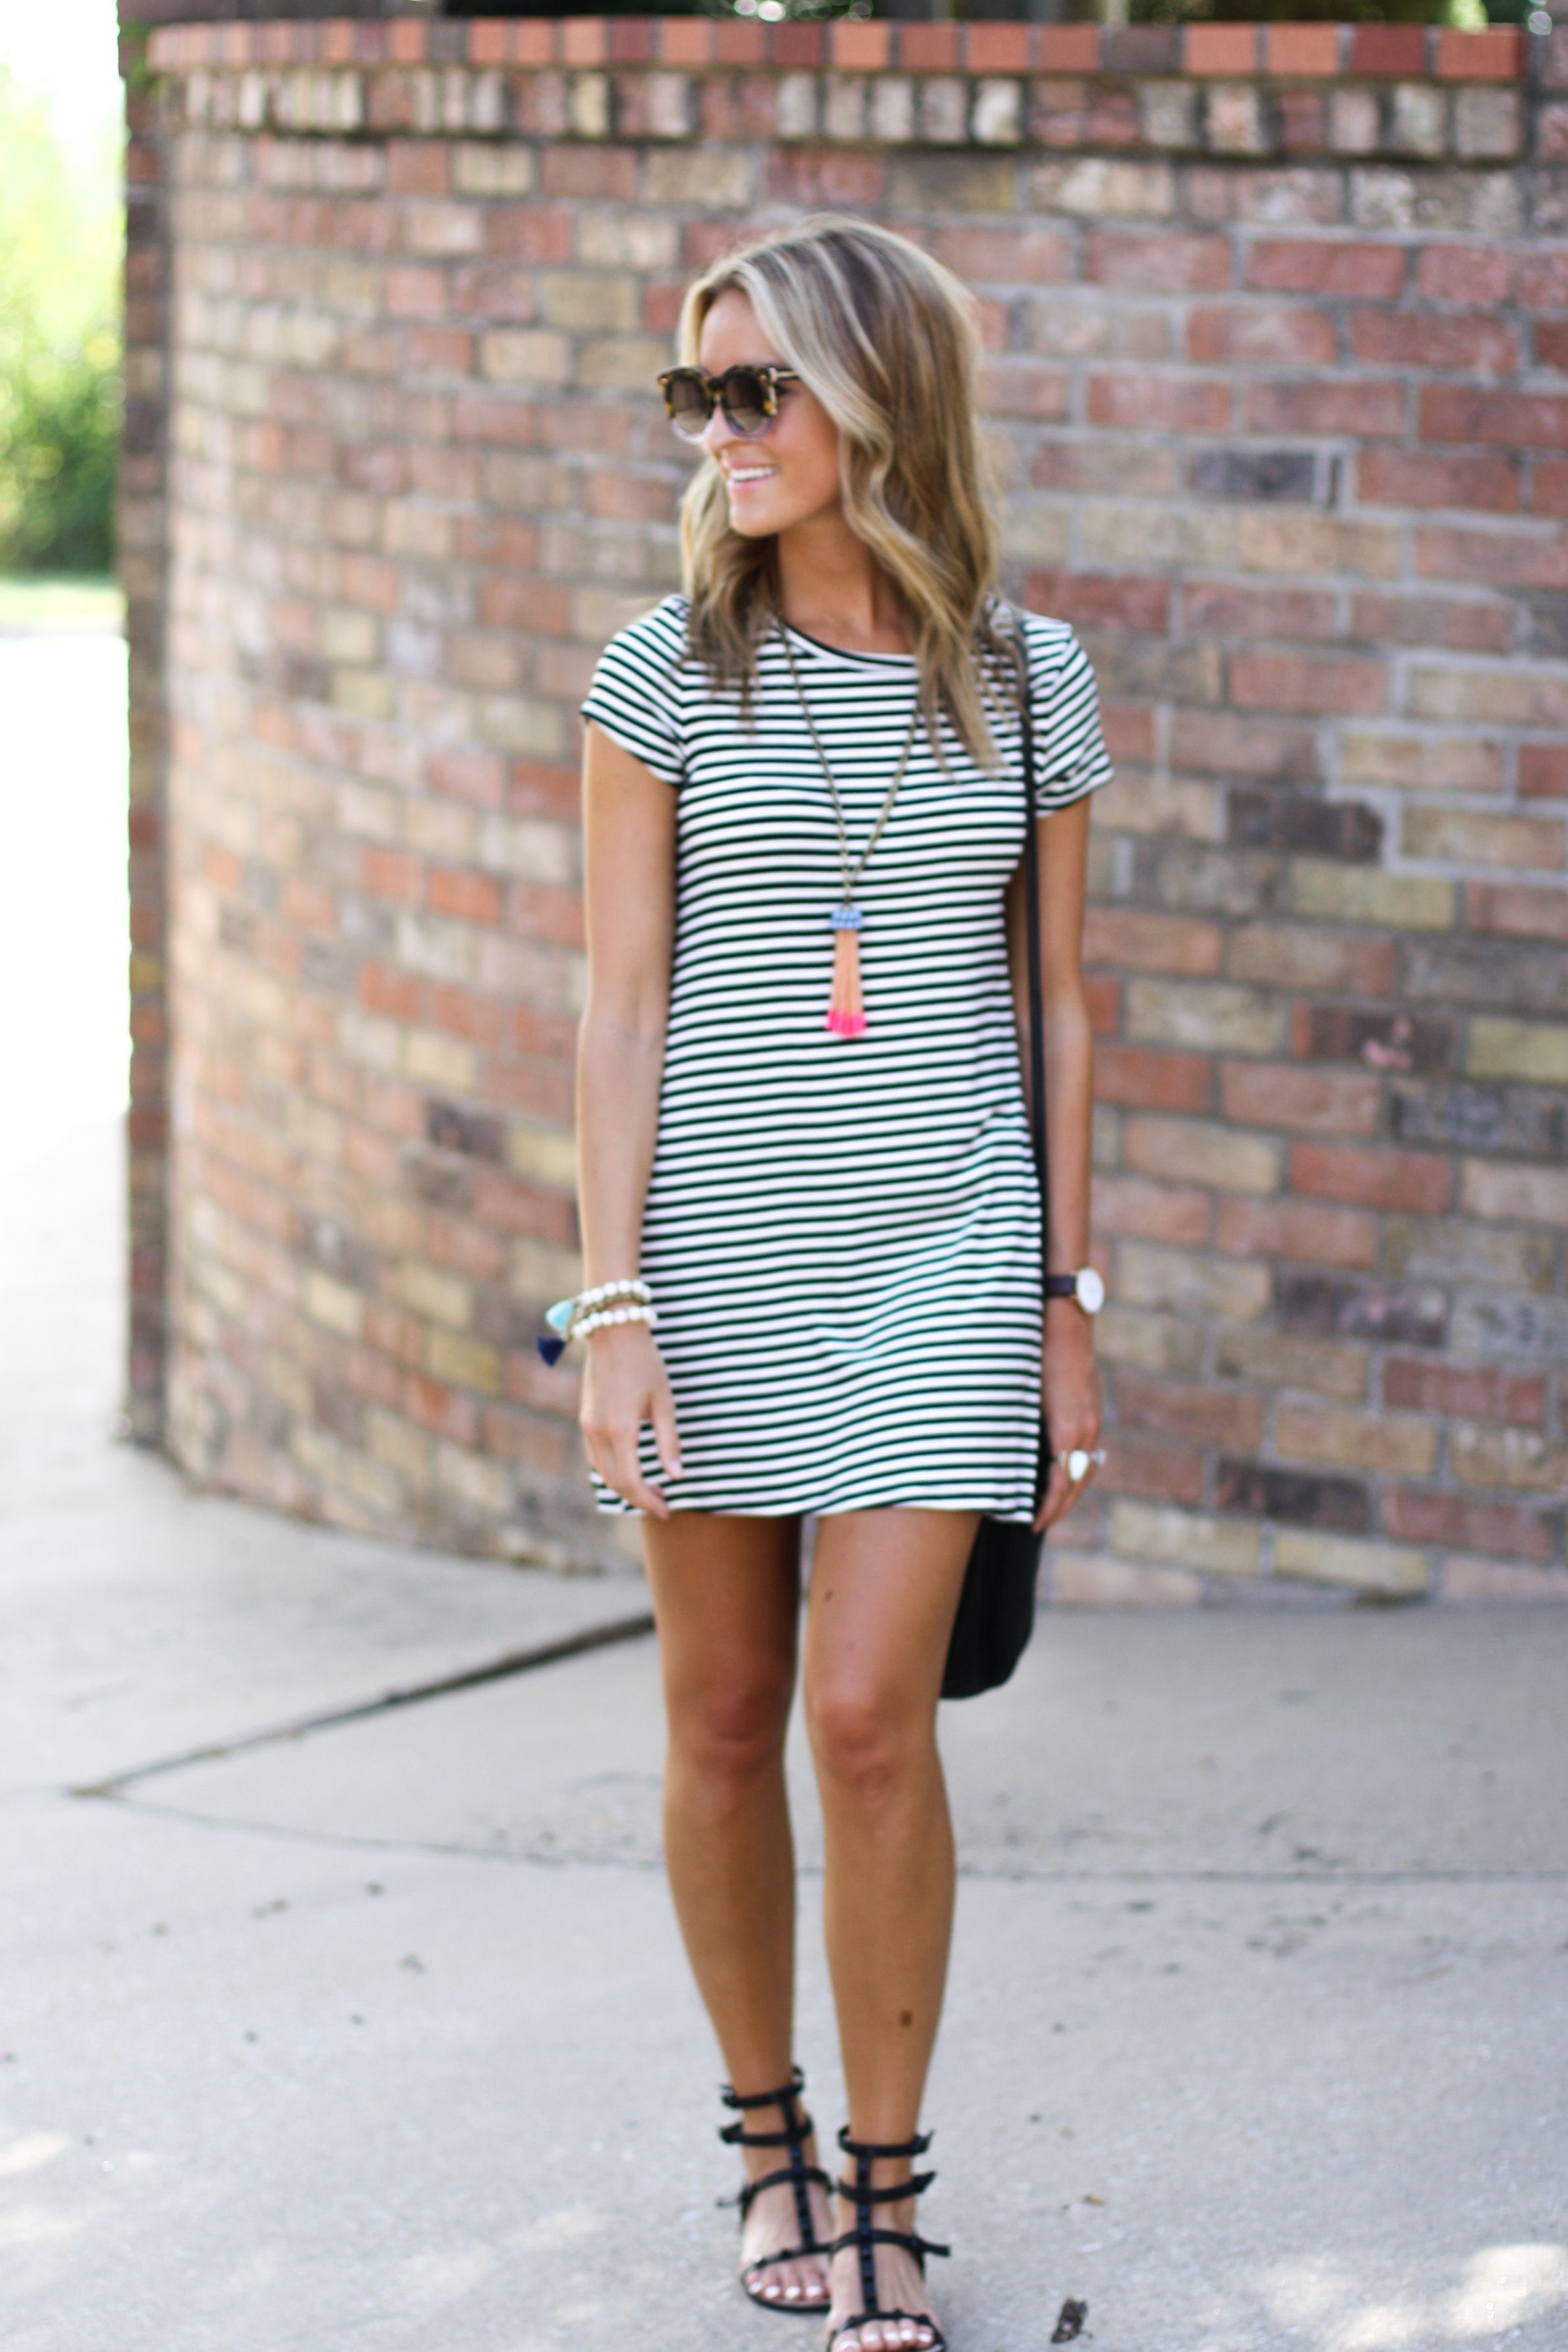 ffc6c246 Style Blogger, Lauren Sims in our Sam Striped Dress. Available on  www.norestforbridget.com. #styleblogger